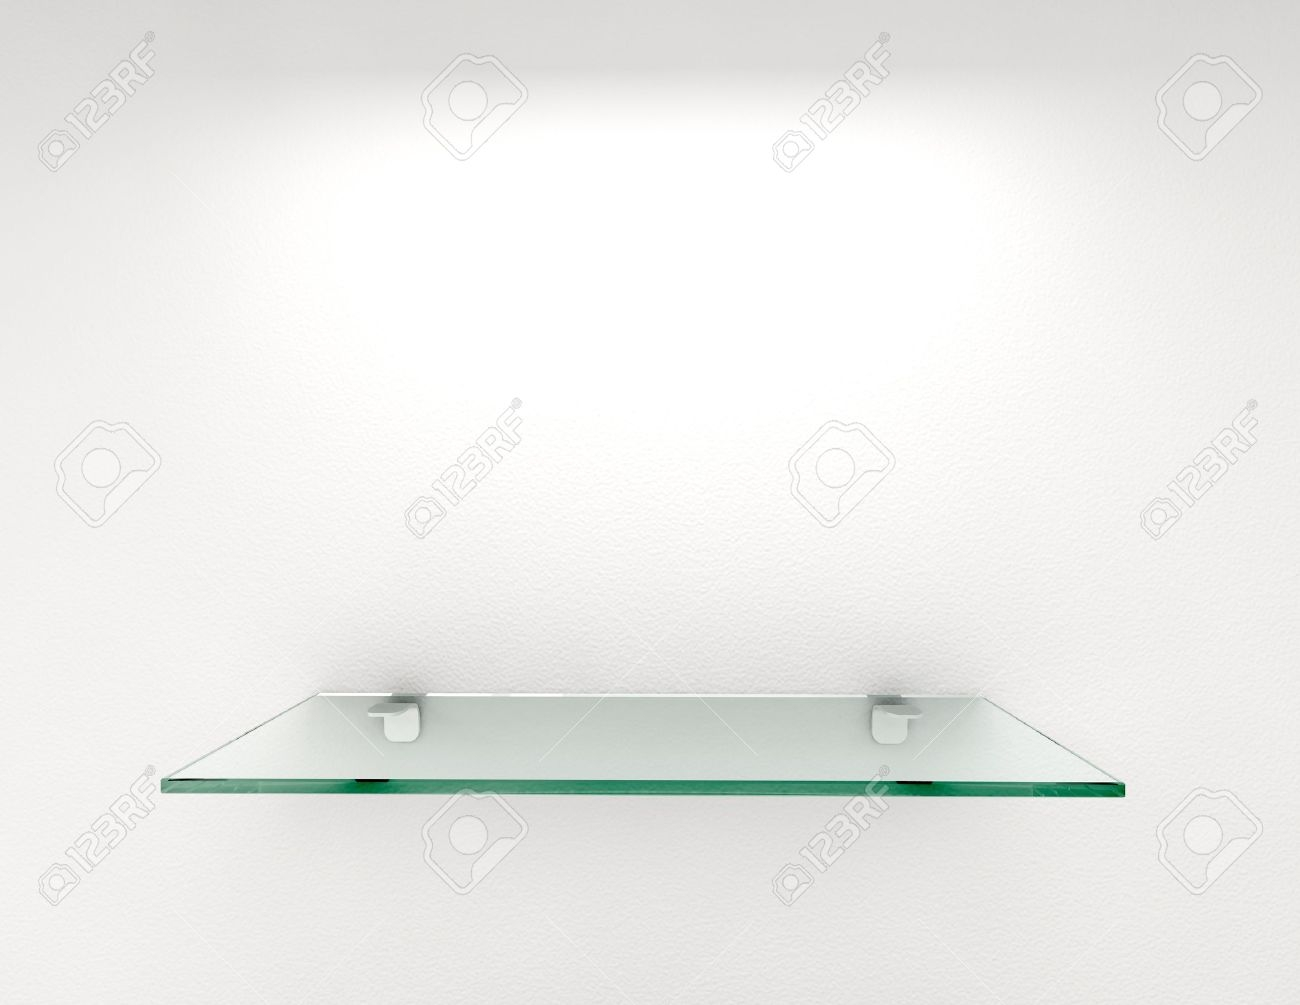 Floating Glass Shelf Kits Buy Decorative Glass Online The For With Regard To Free Floating Glass Shelves (View 11 of 15)